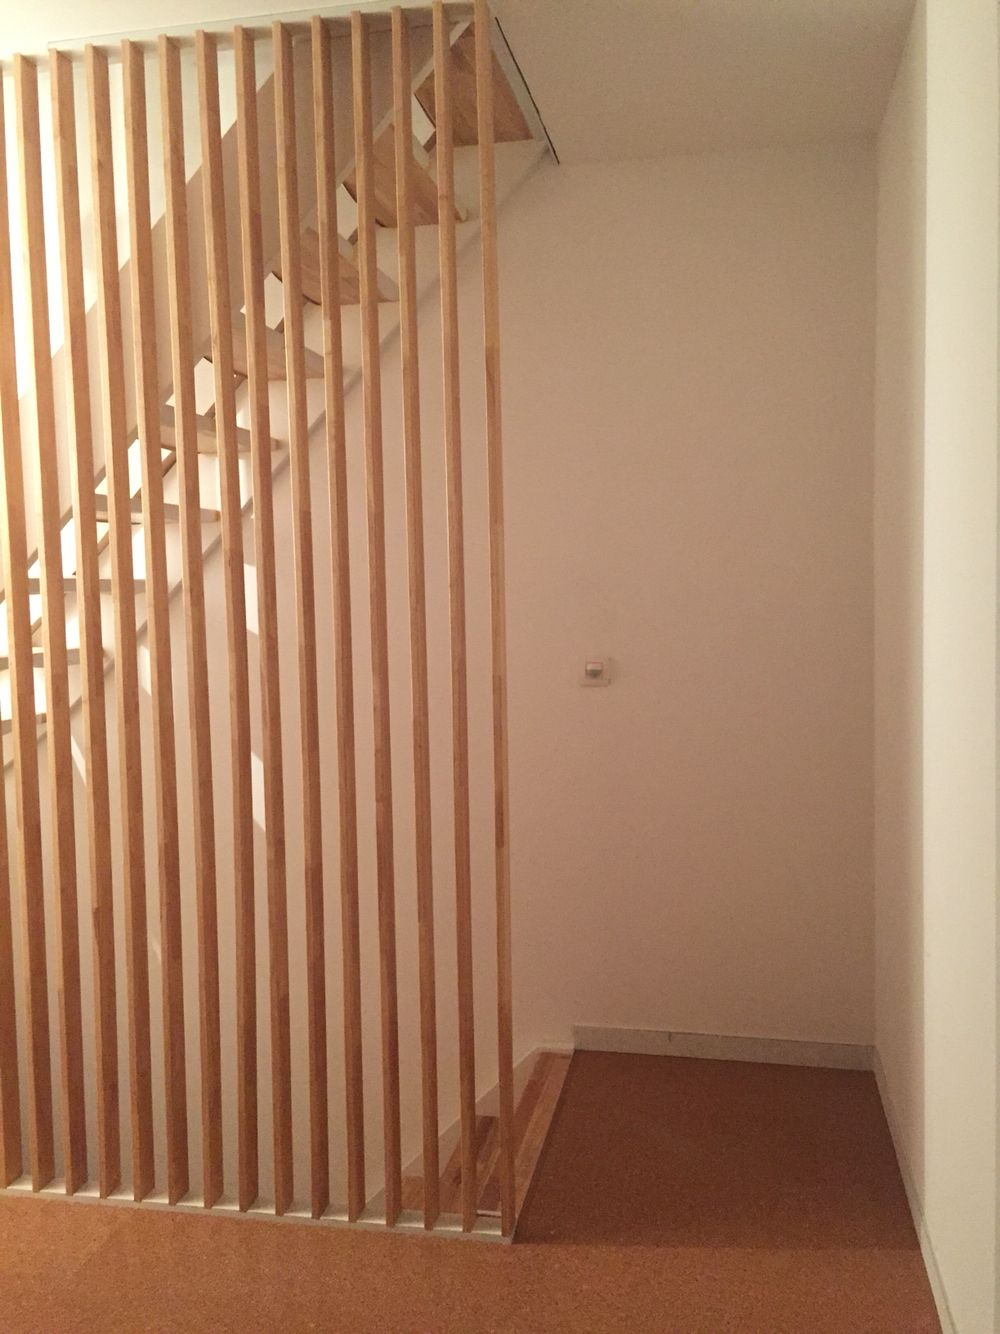 Best Rubberwood Stair Wooden Slats As Bannister Design By 400 x 300